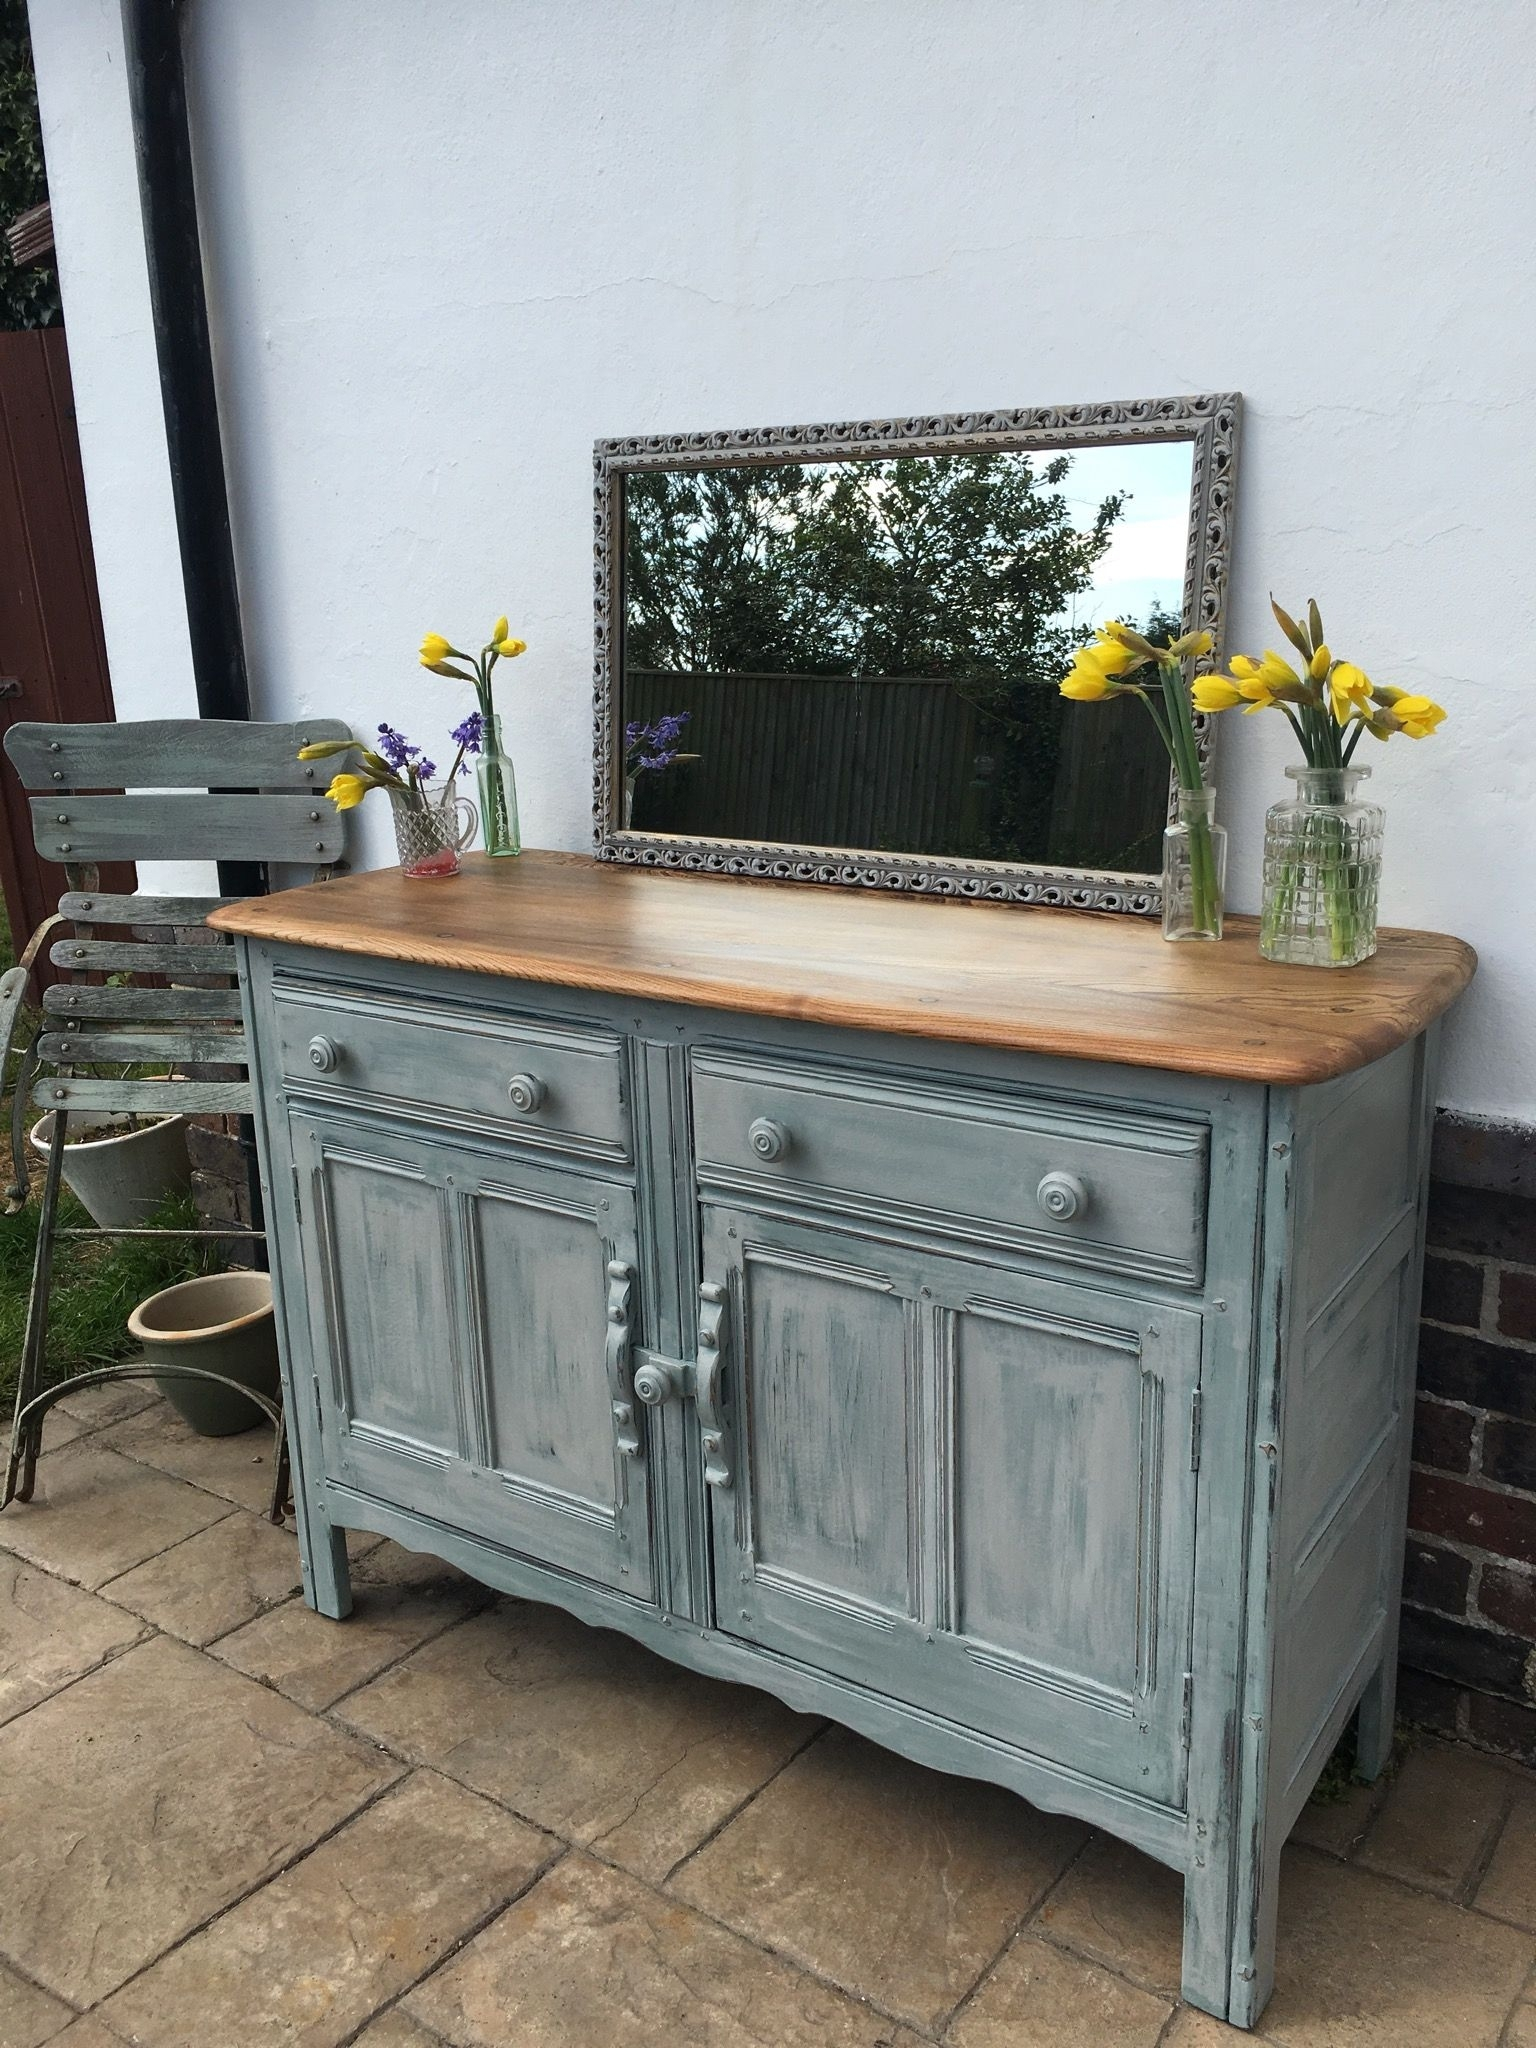 Ercol Sideboard , Painted In Annie Sloan Duck Egg Blue And Paris within Blue Stone Light Rustic Black Sideboards (Image 15 of 30)